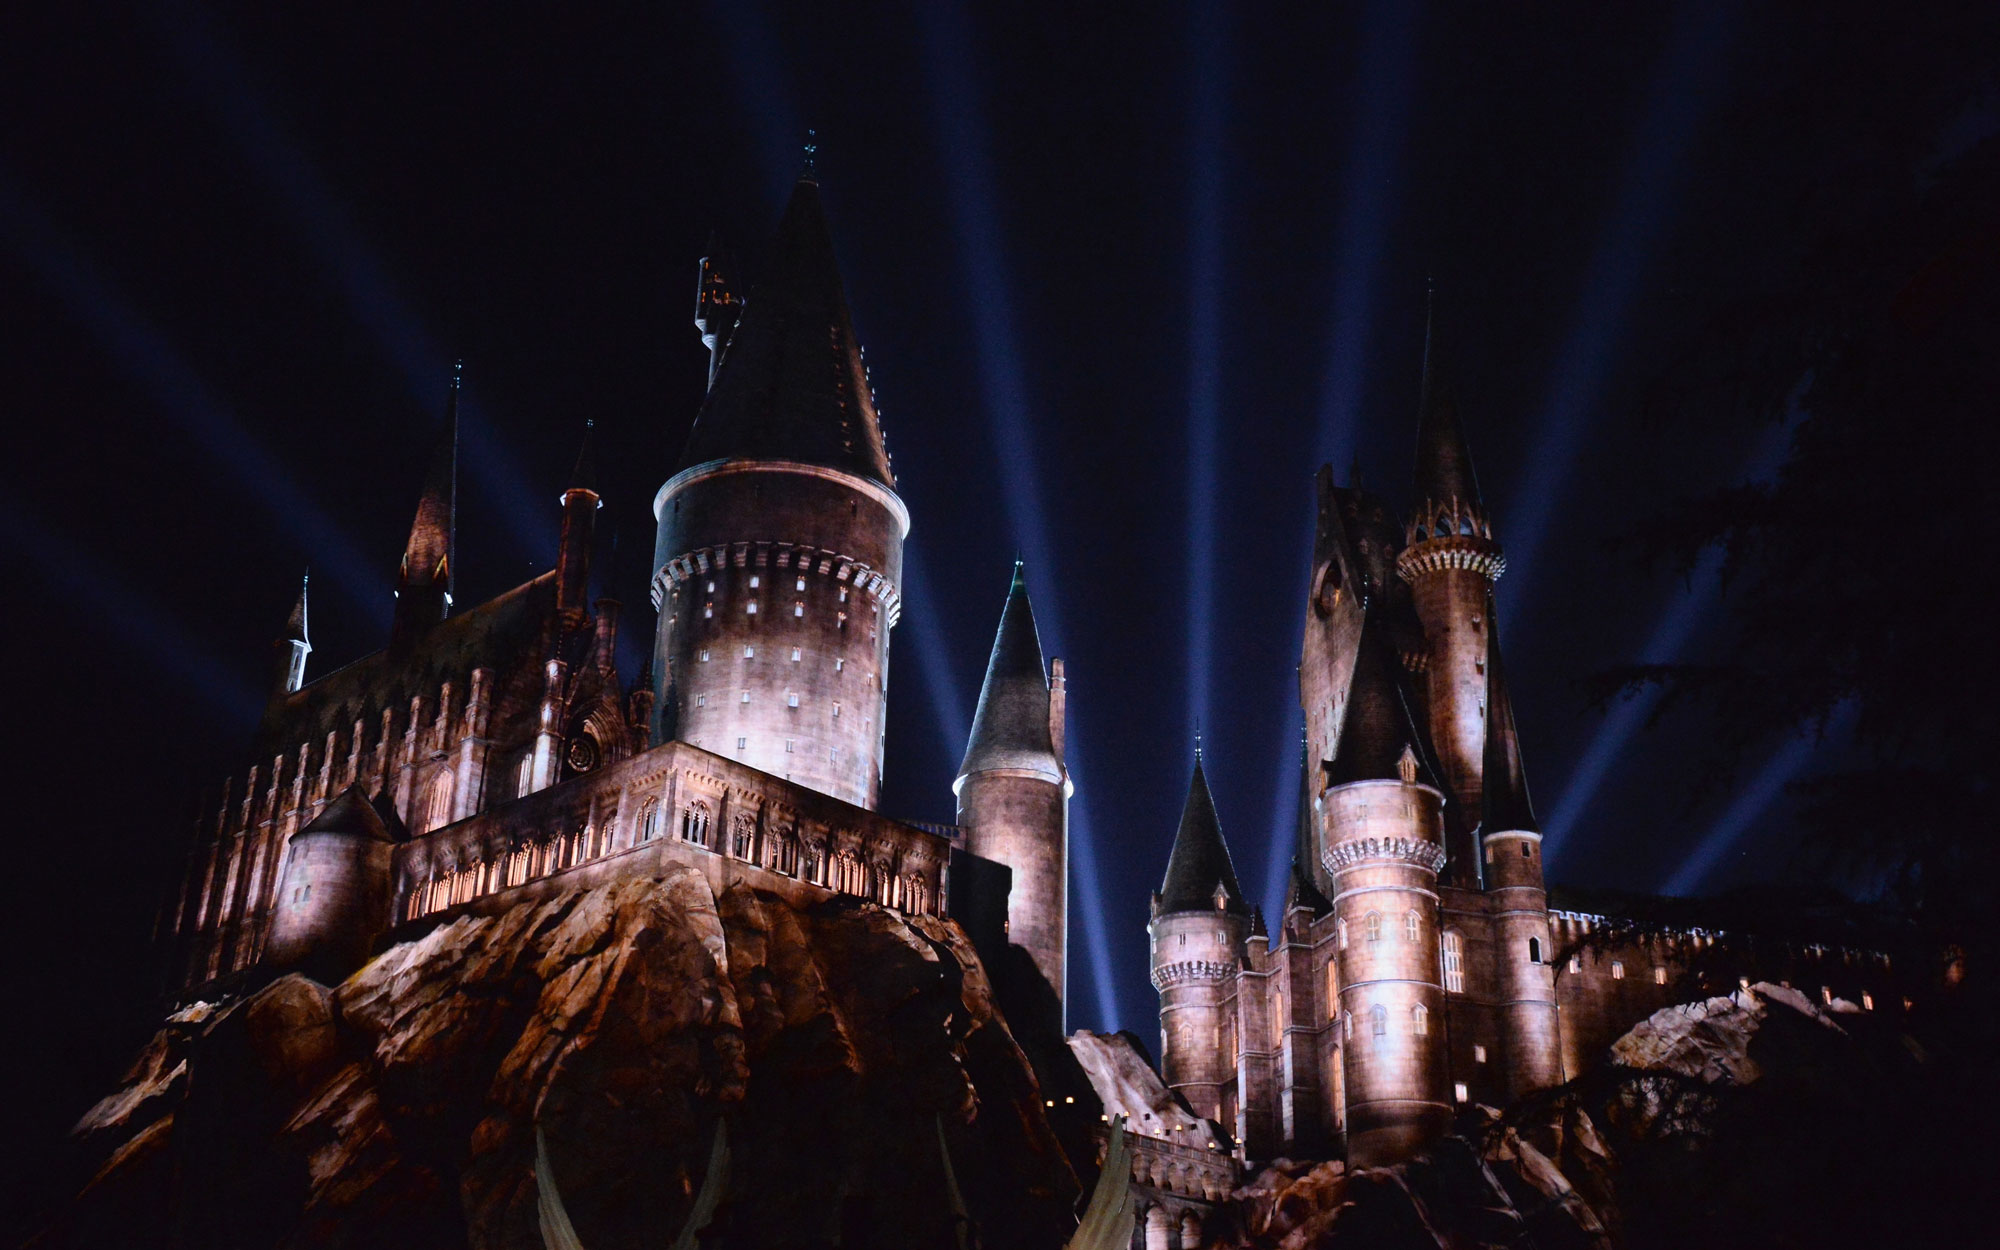 Hollywood's Wizarding World of Harry Potter Exclusive Details